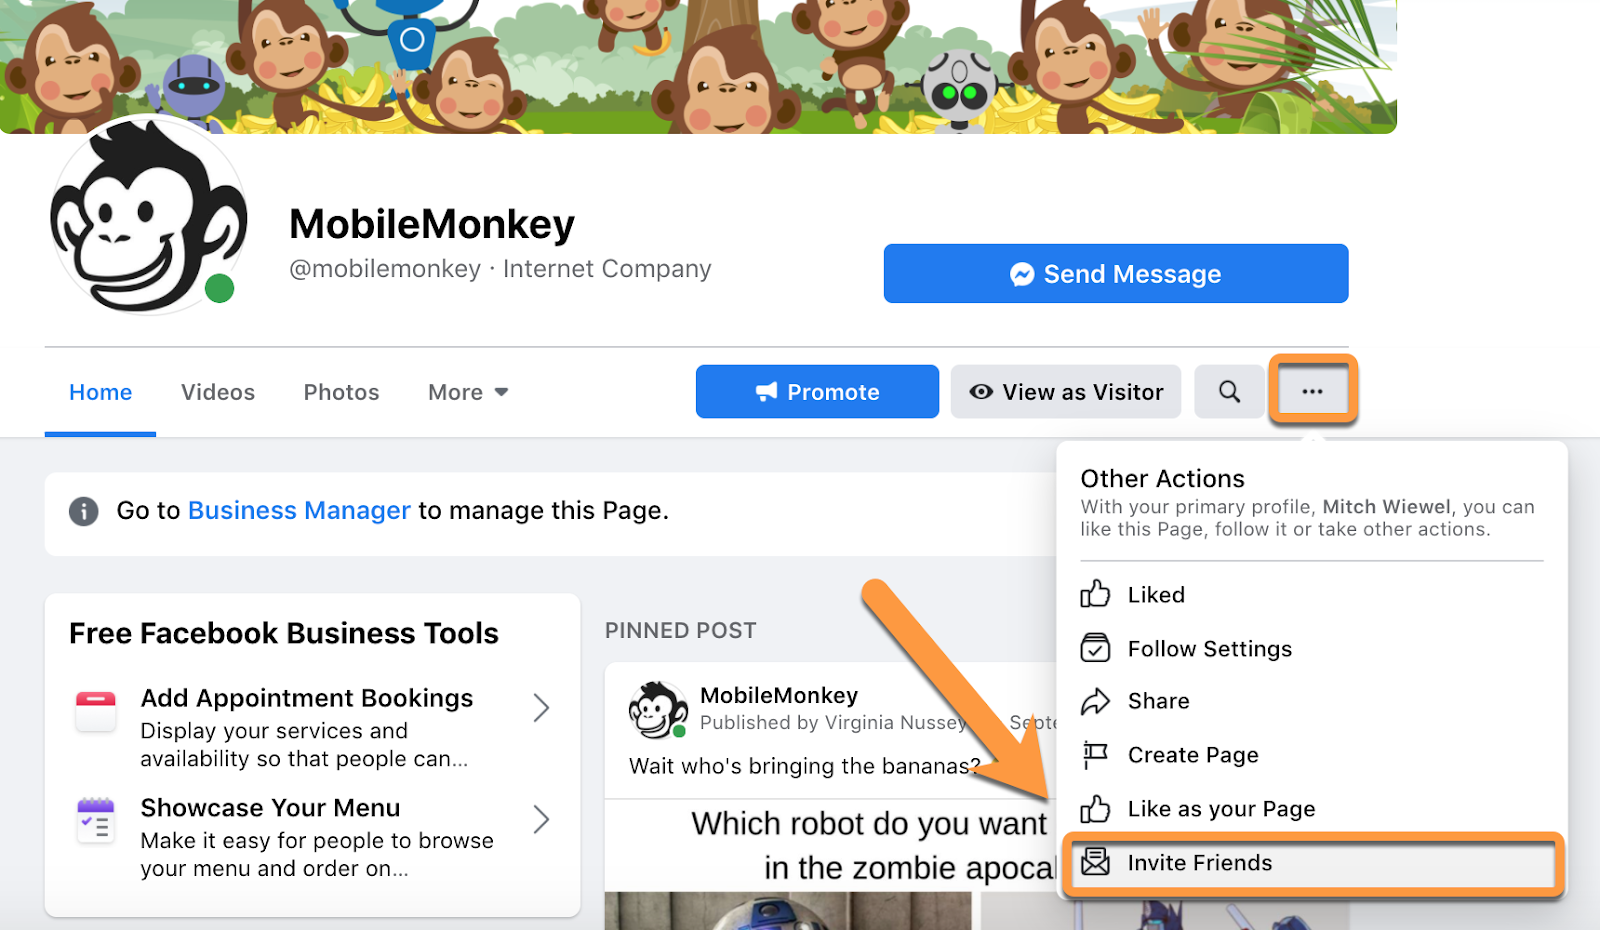 Building a Facebook business page